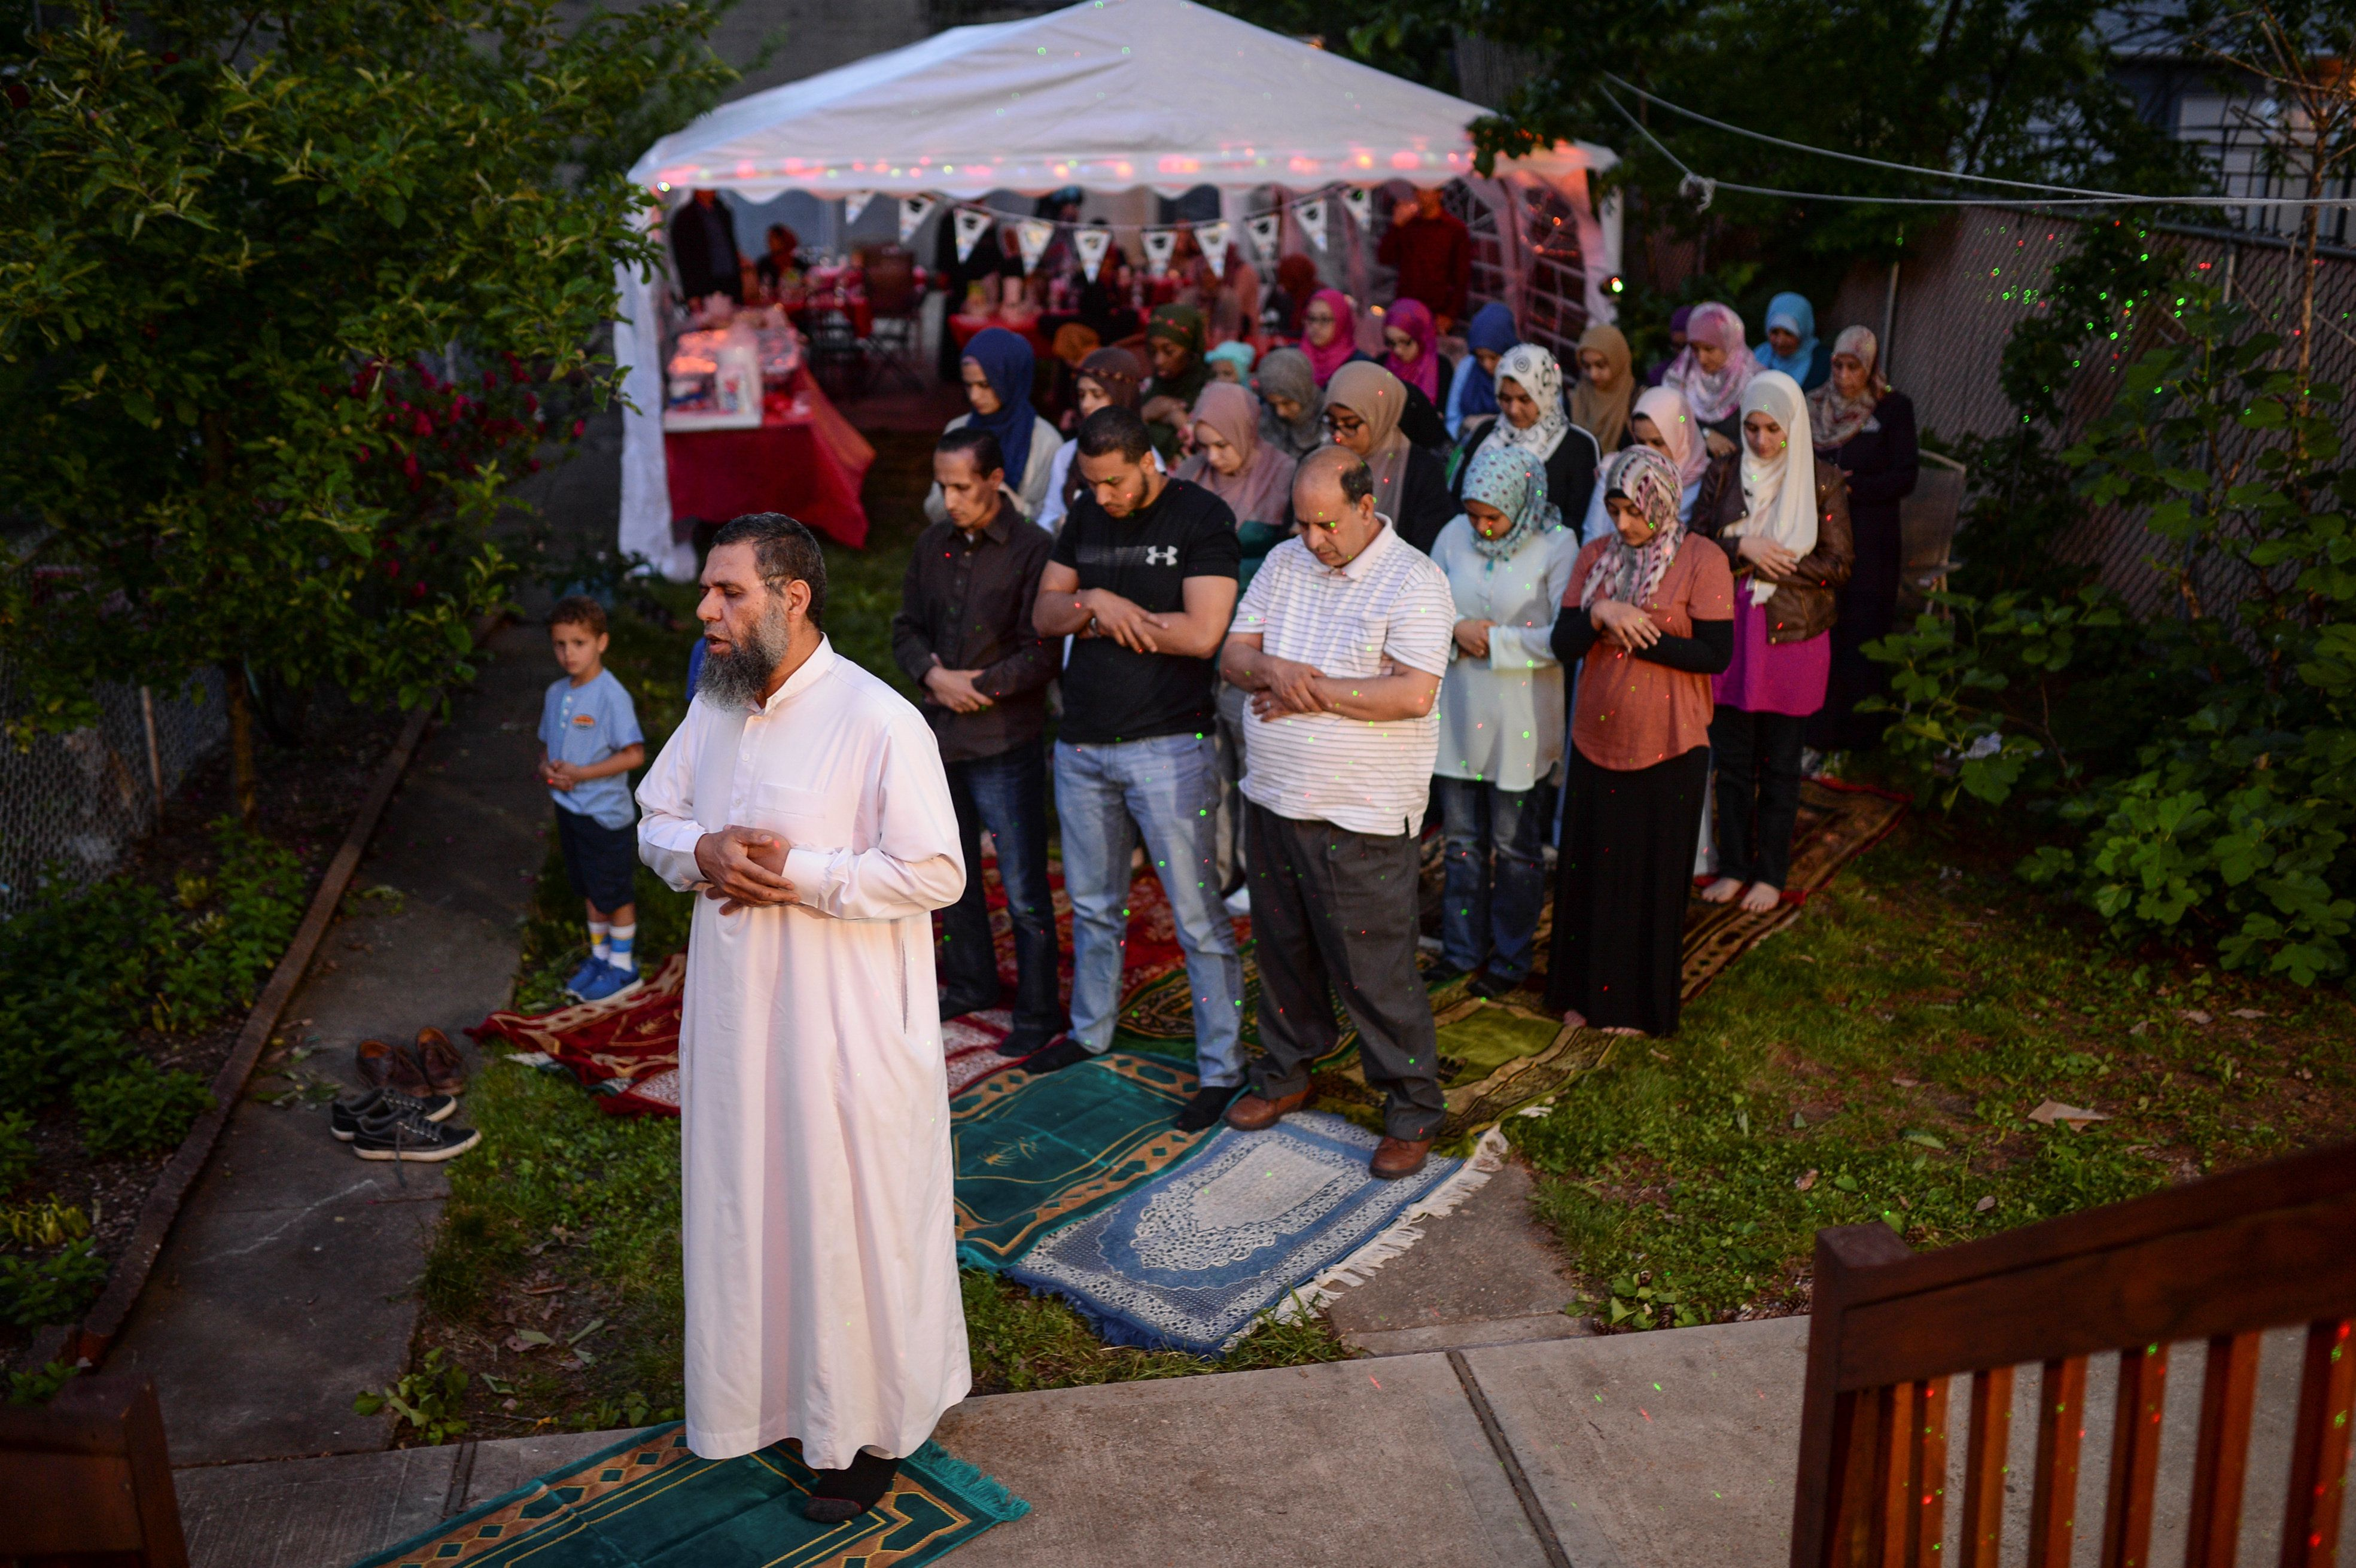 An imam leads a Maghrib sunset prayer during Ramadan for a family in Bayonne, New Jersey, on June 2, 2017.